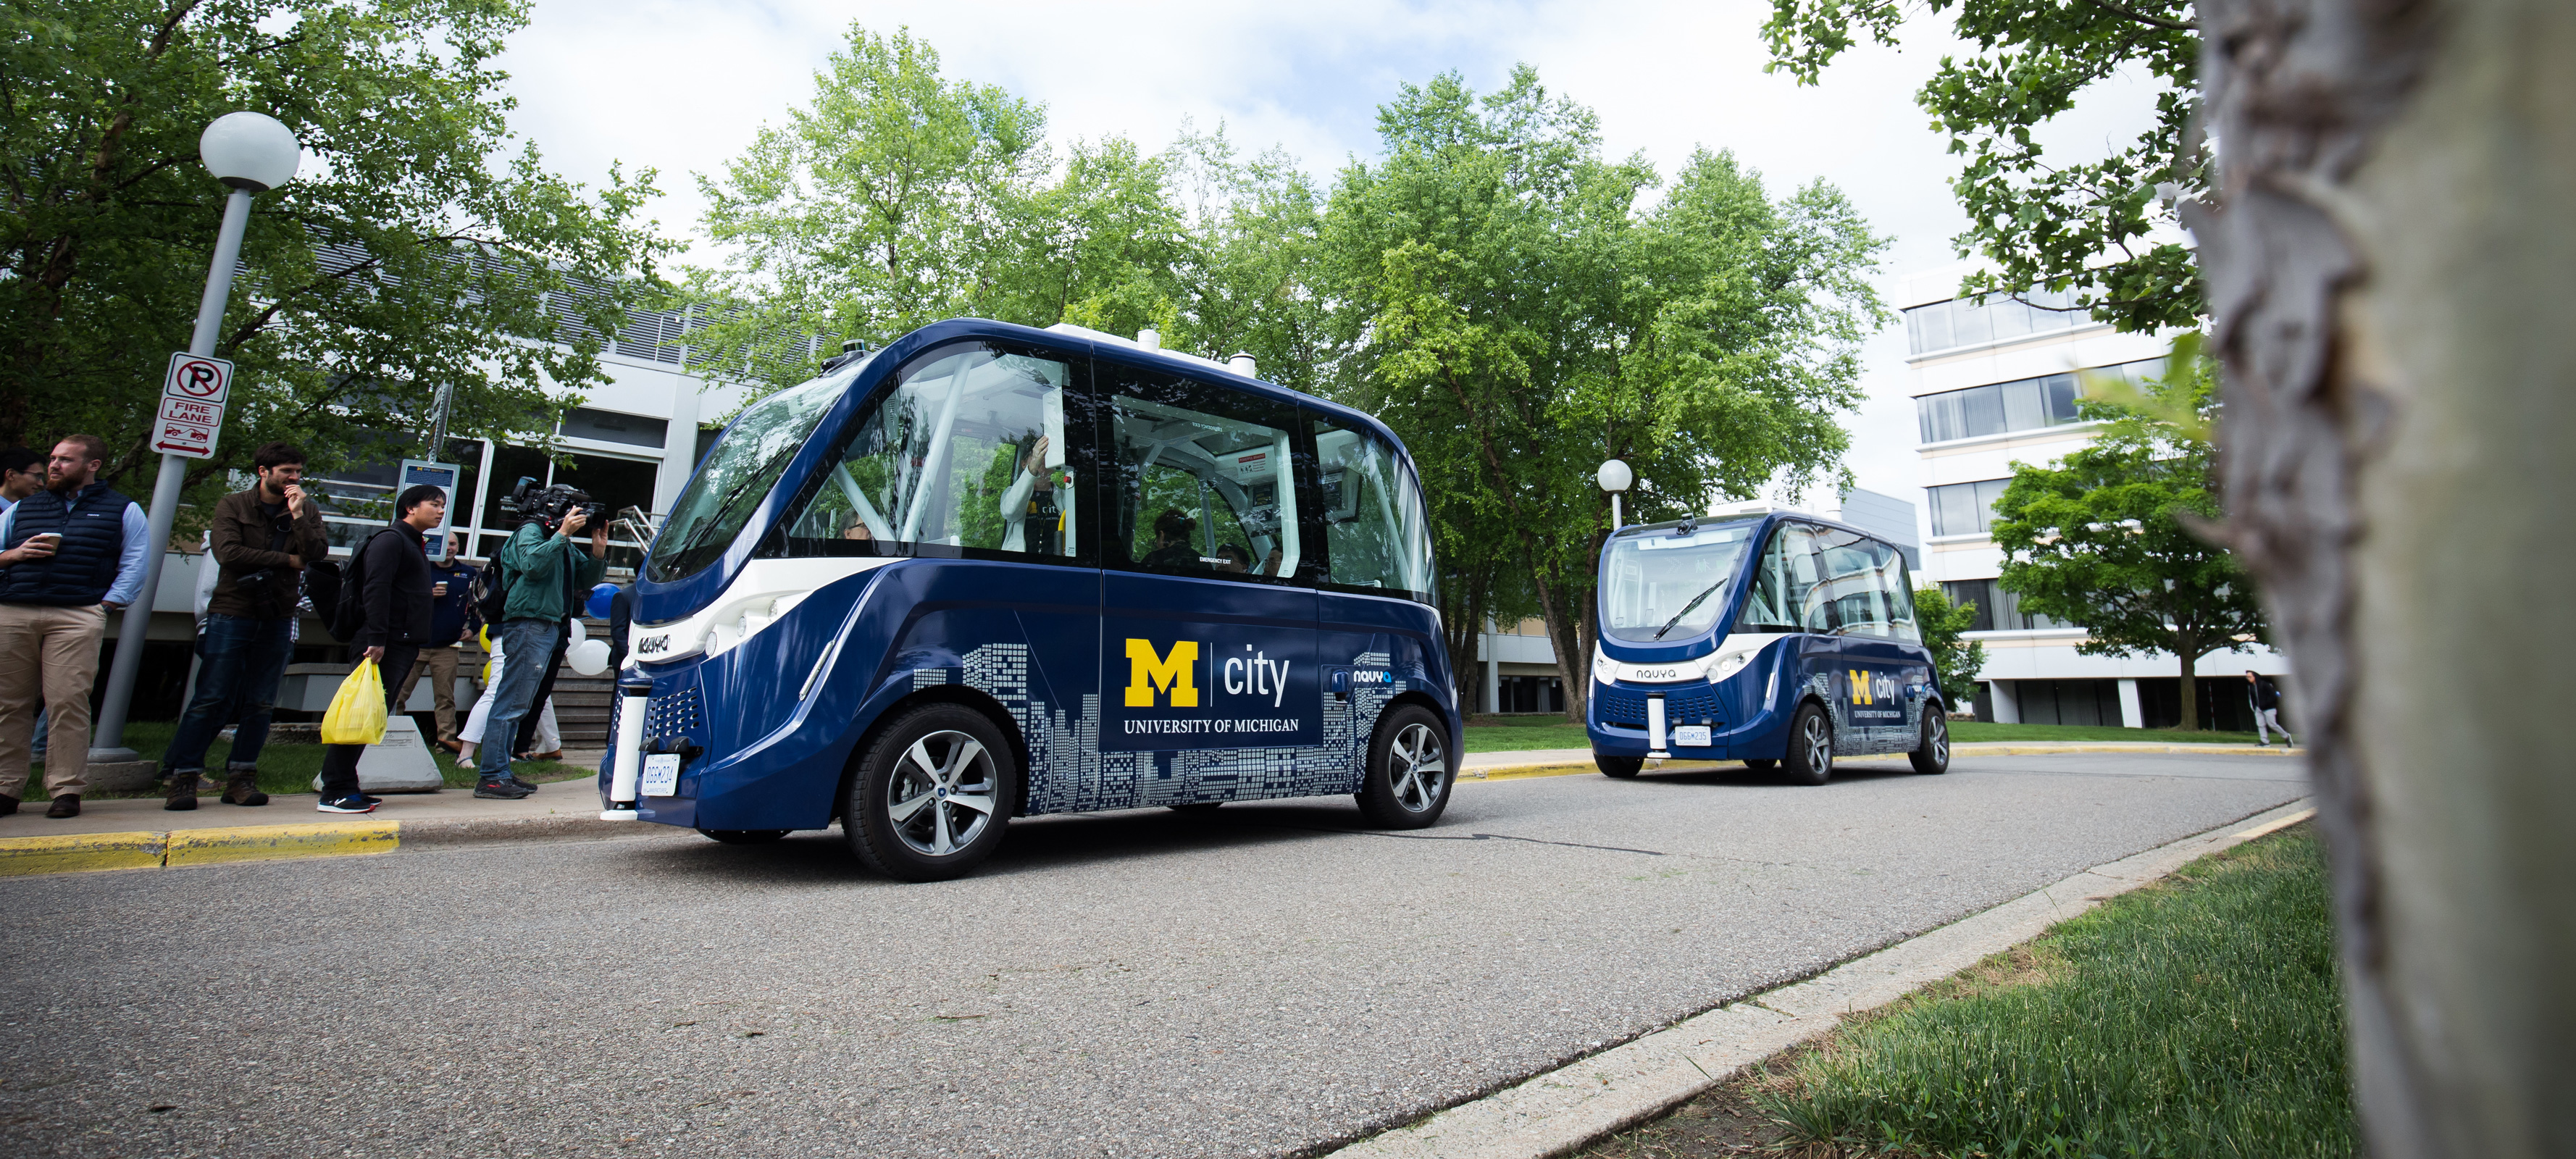 two driverless shuttles parked on the road